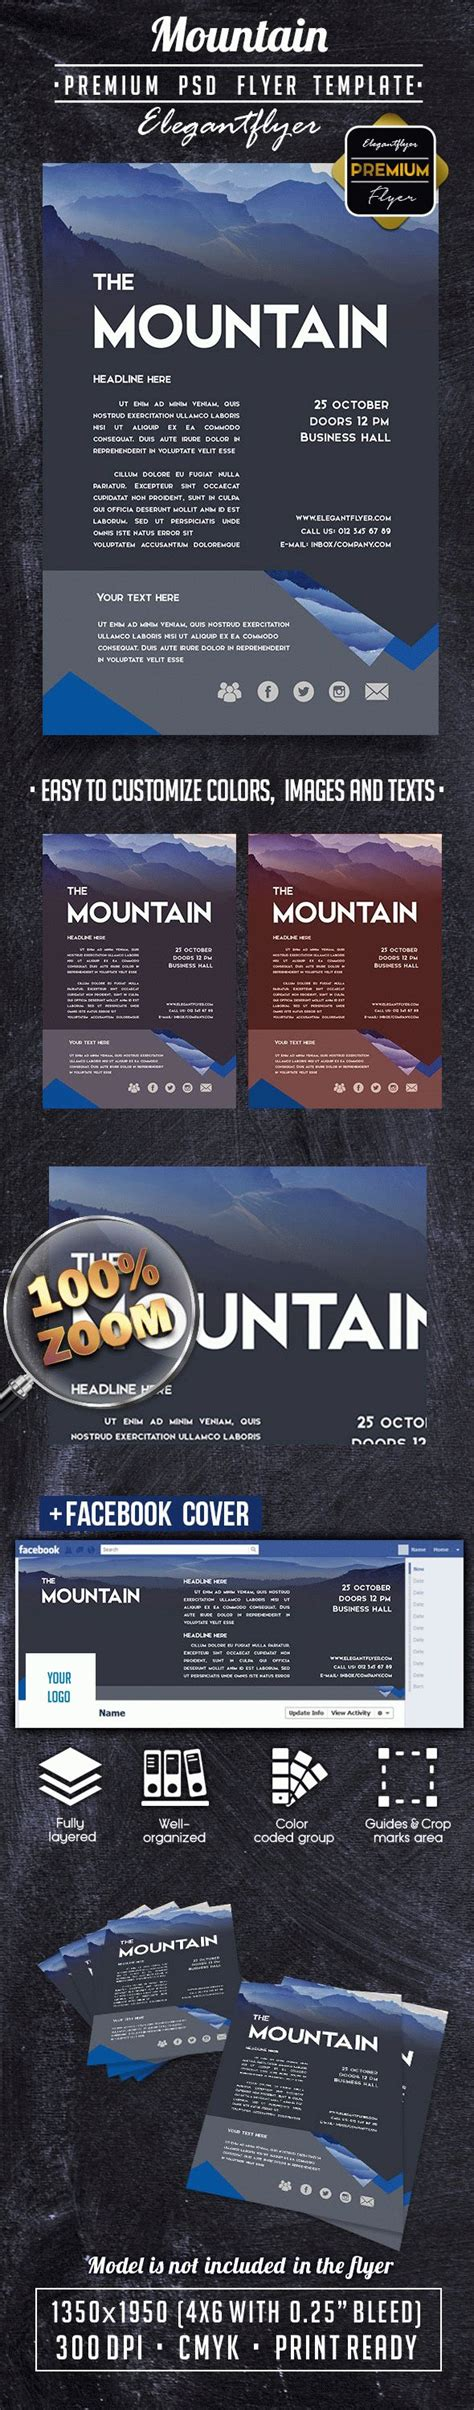 Premium Flyer Templates mountain premium flyer psd template cover by